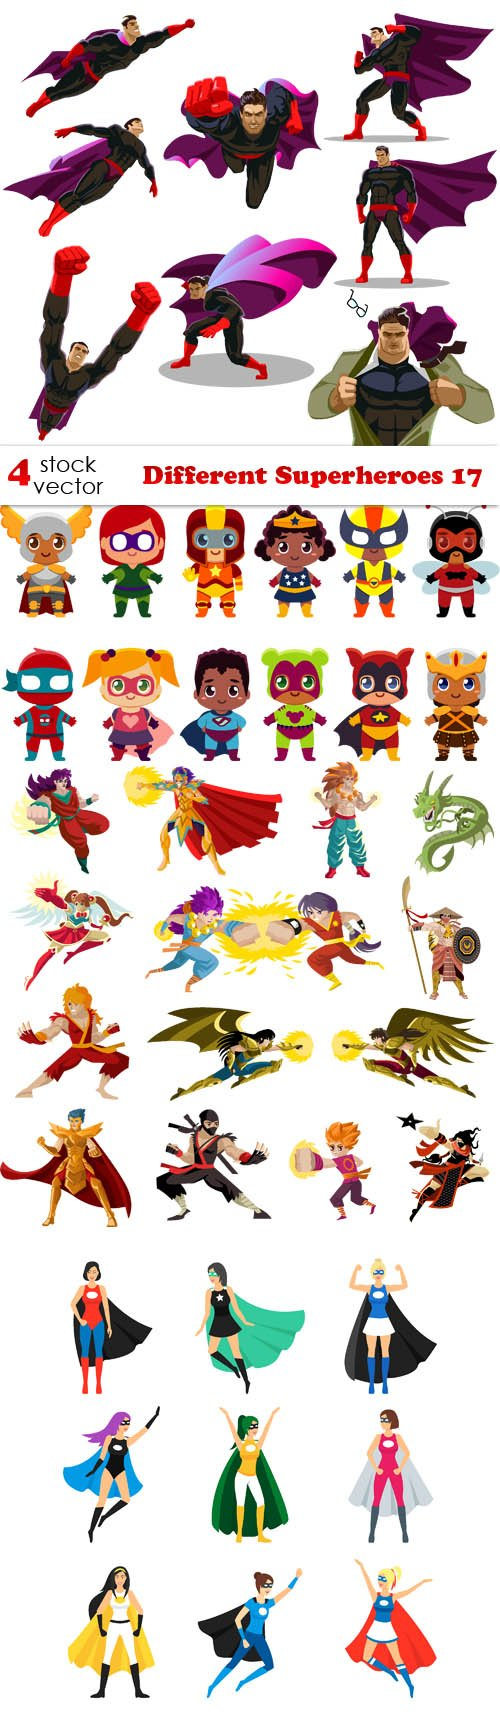 Vectors - Different Superheroes 17